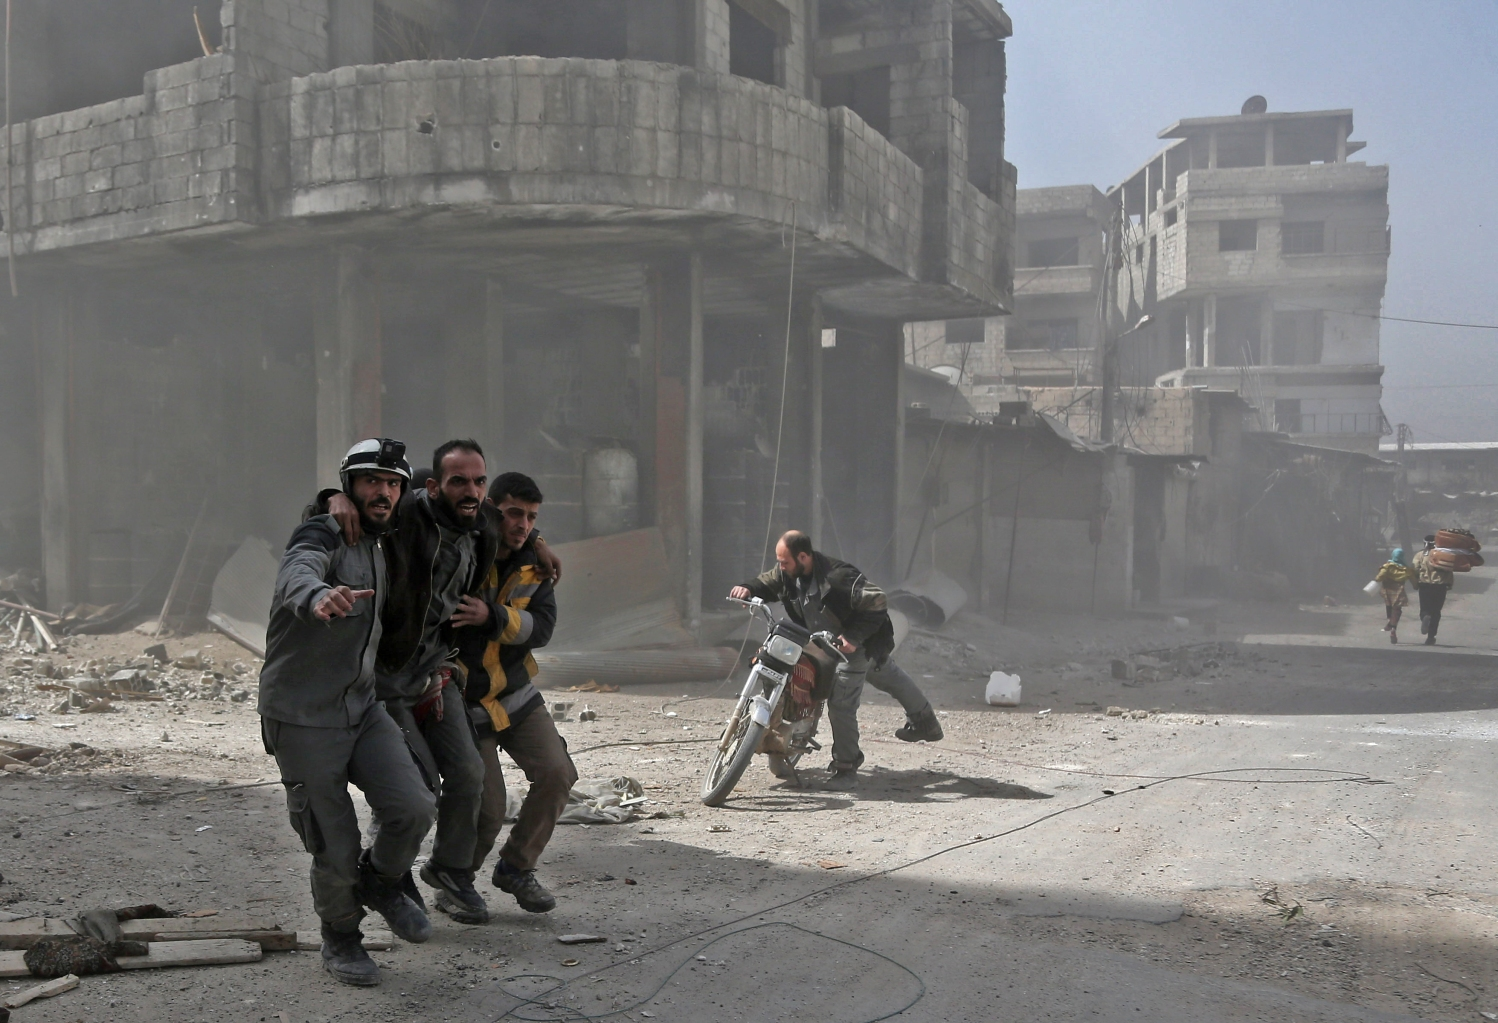 TOPSHOT - Volunteers from the Syrian civil defence help a man in Hamouria during Syrian government shelling on rebel-held areas in the Eastern Ghouta region on the outskirts of the capital Damascus on March 6, 2018. Heavy air strikes and clashes shook the Syrian rebel enclave of Eastern Ghouta, as France and Britain called for an emergency UN Security Council meeting on the escalating violence. / AFP PHOTO / ABDULMONAM EASSA        (Photo credit should read ABDULMONAM EASSA/AFP/Getty Images)